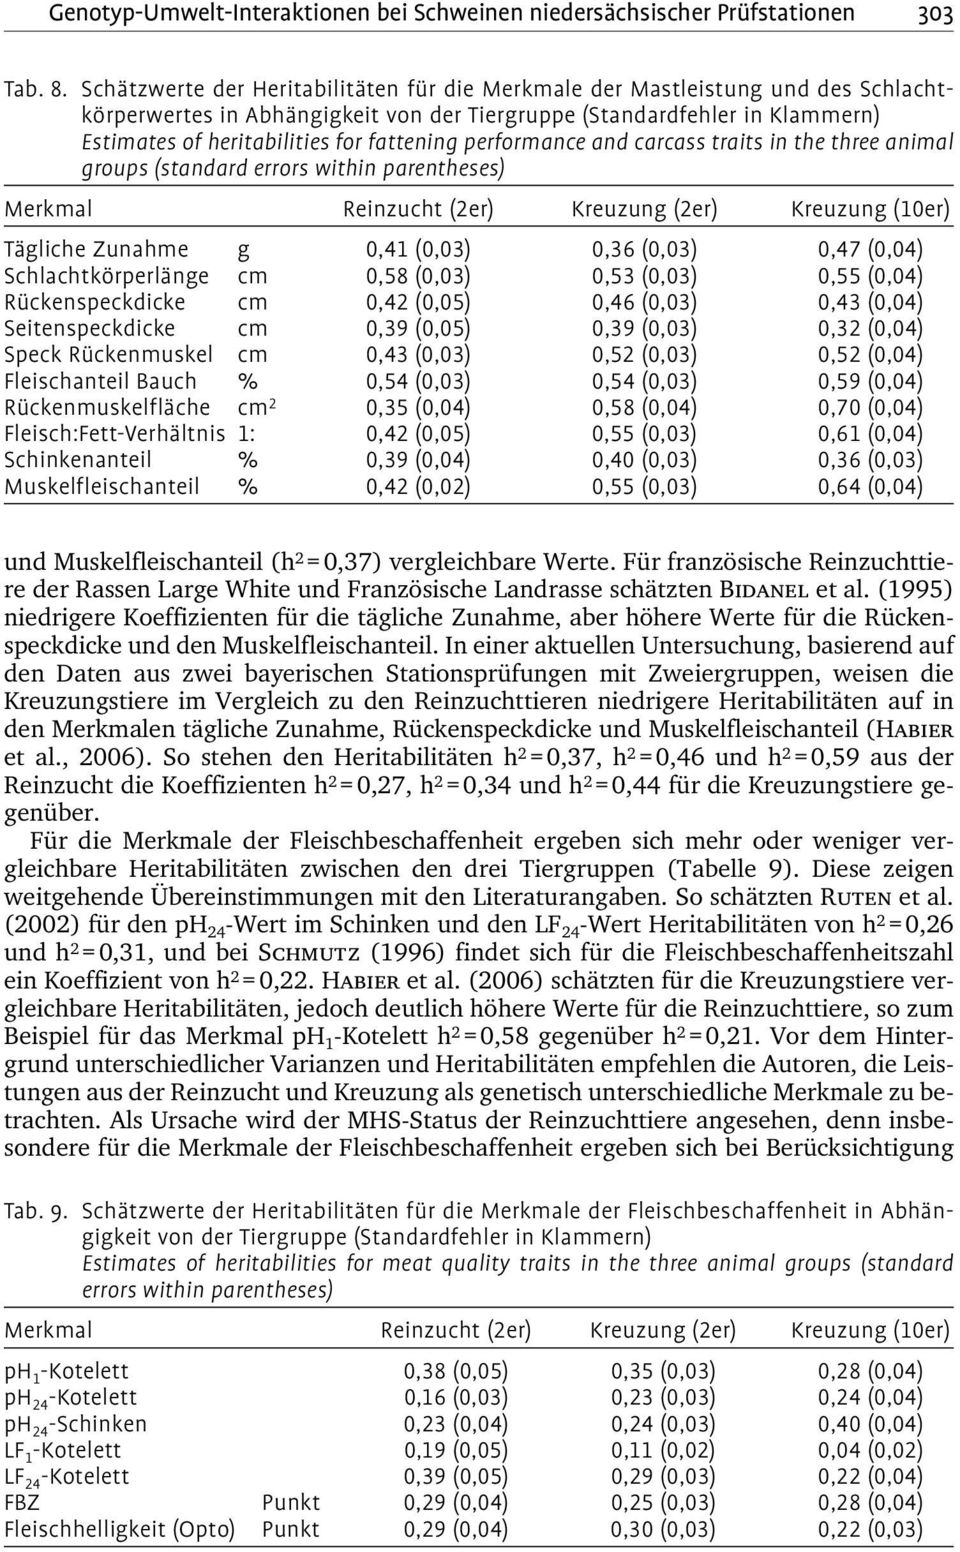 fattening performance and carcass traits in the three animal groups (standard errors within parentheses) Merkmal Reinzucht (2er) Kreuzung (2er) Kreuzung (10er) Tägliche Zunahme g 0,41 (0,03) 0,36